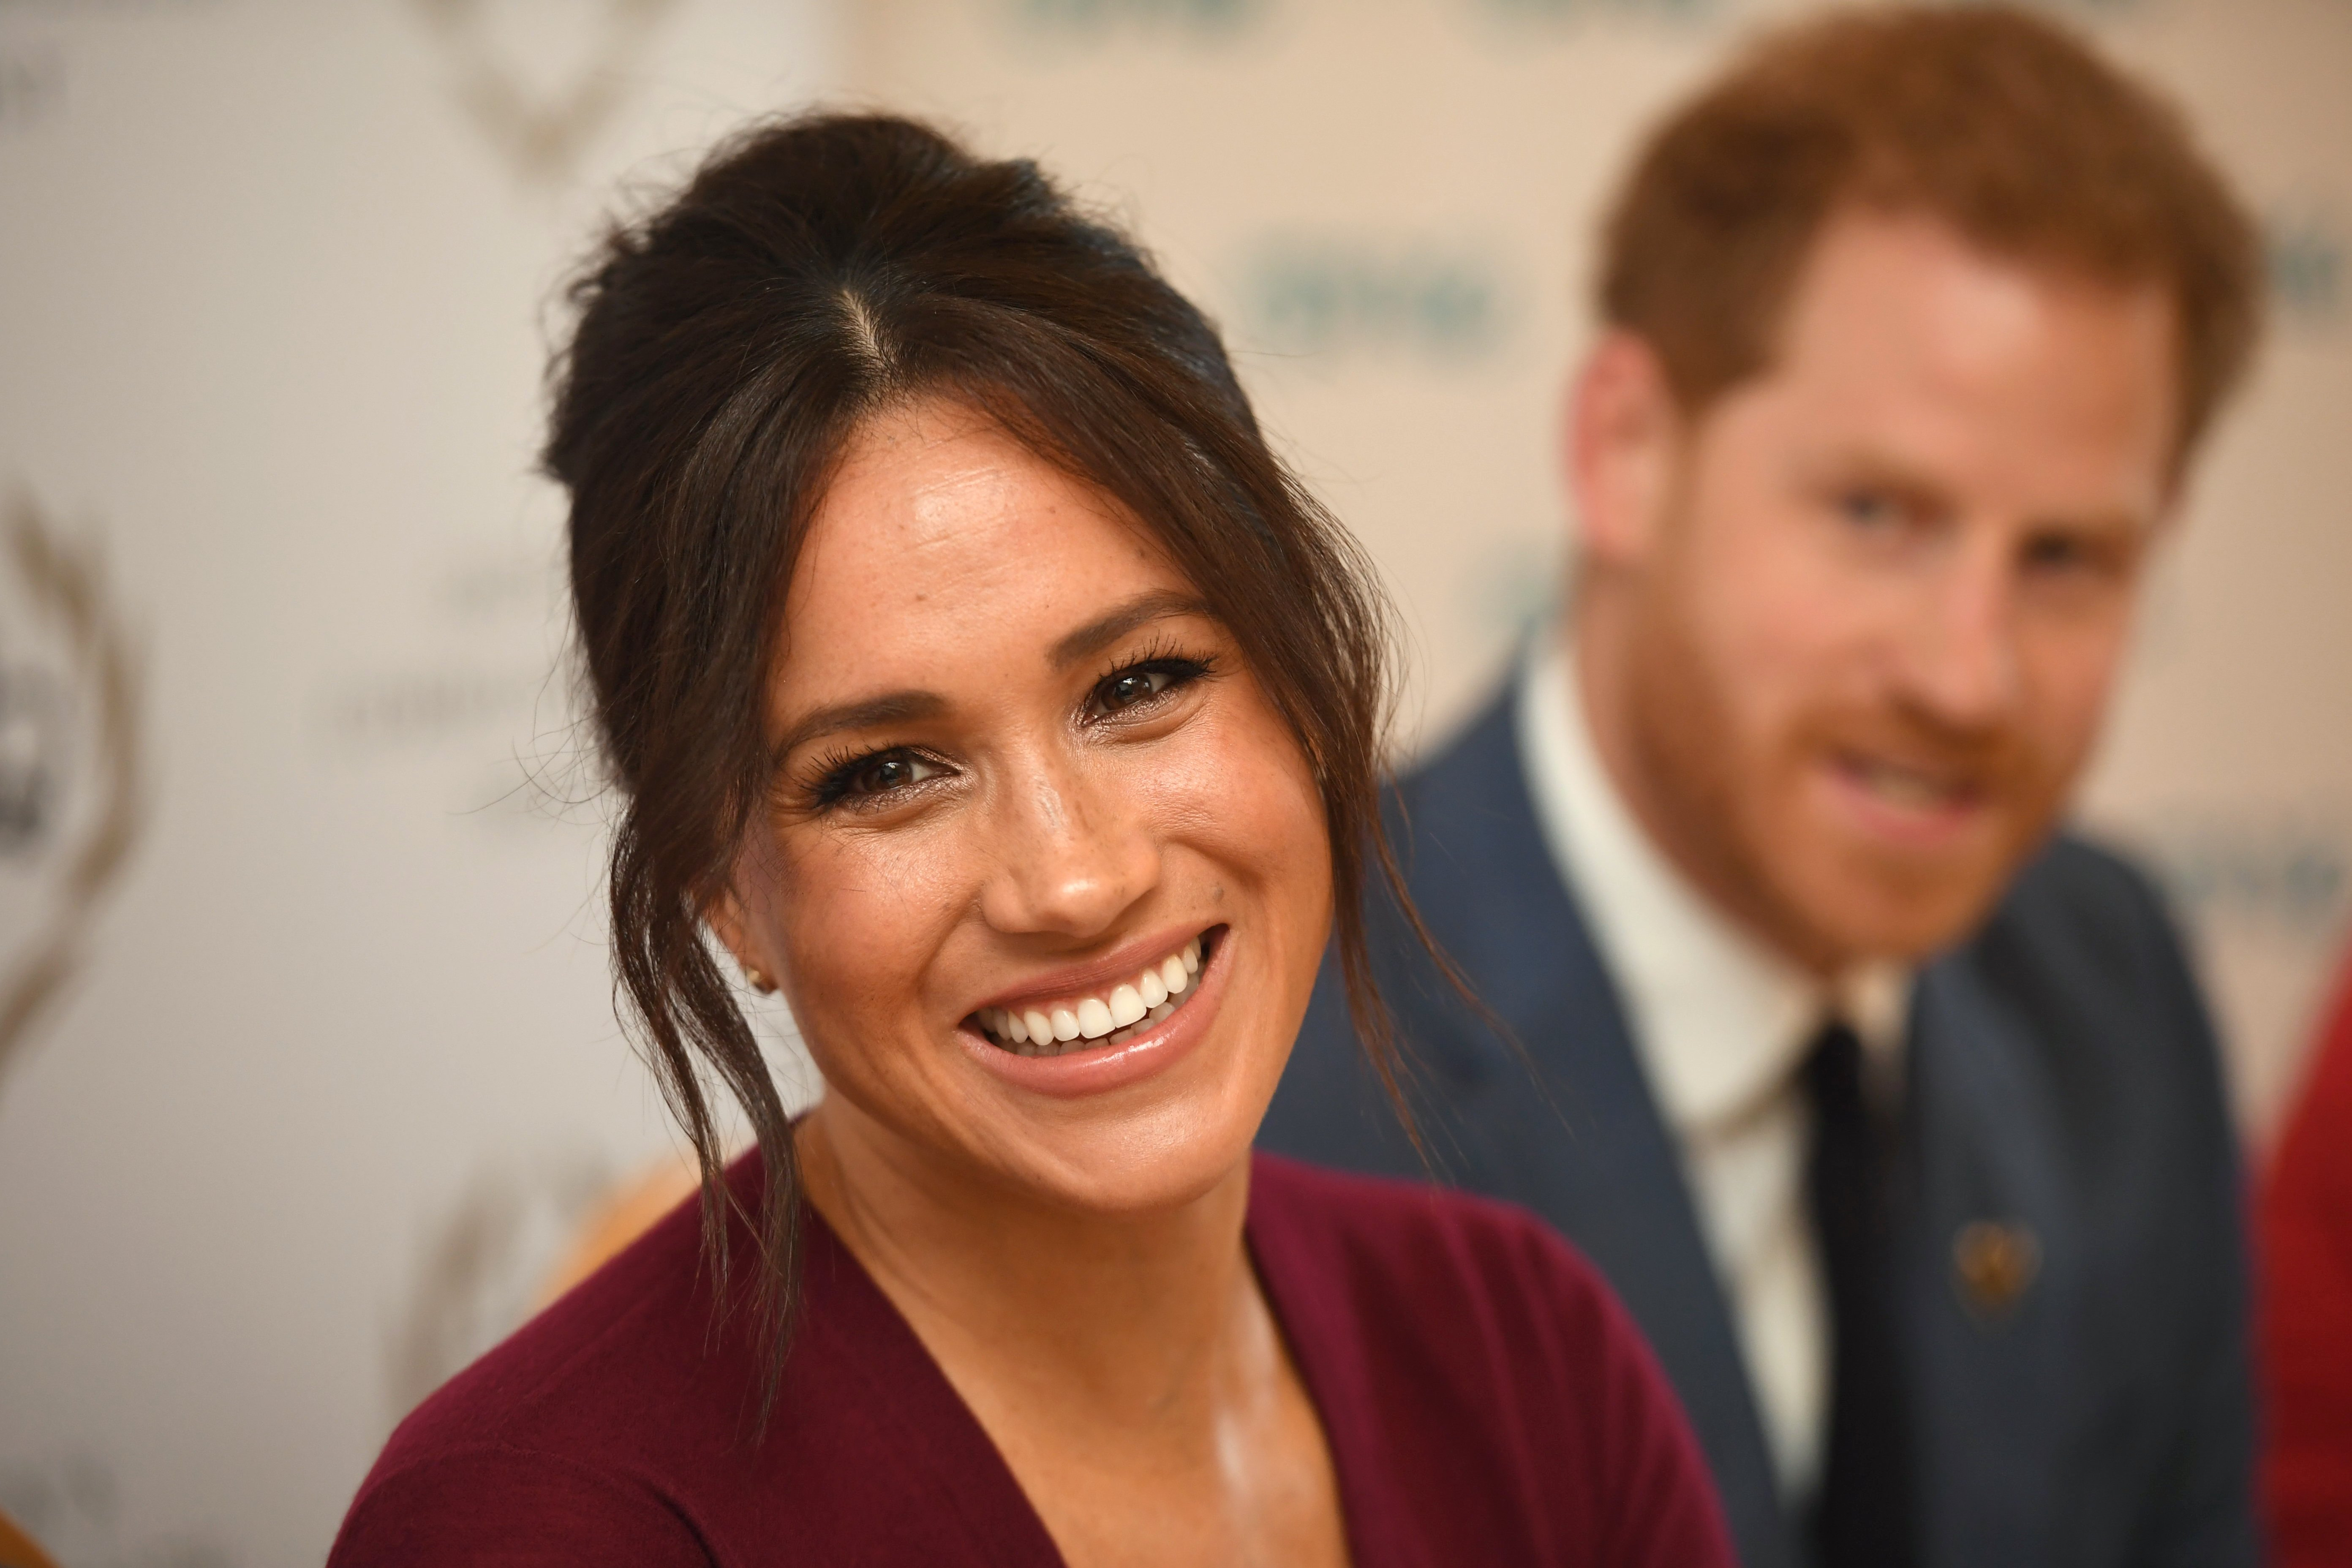 Meghan Markle participe à une discussion sur l'égalité des sexes au Queens Commonwealth Trust à Windsor, en Angleterre, le 25 octobre. 2019 | Photo: Getty Images